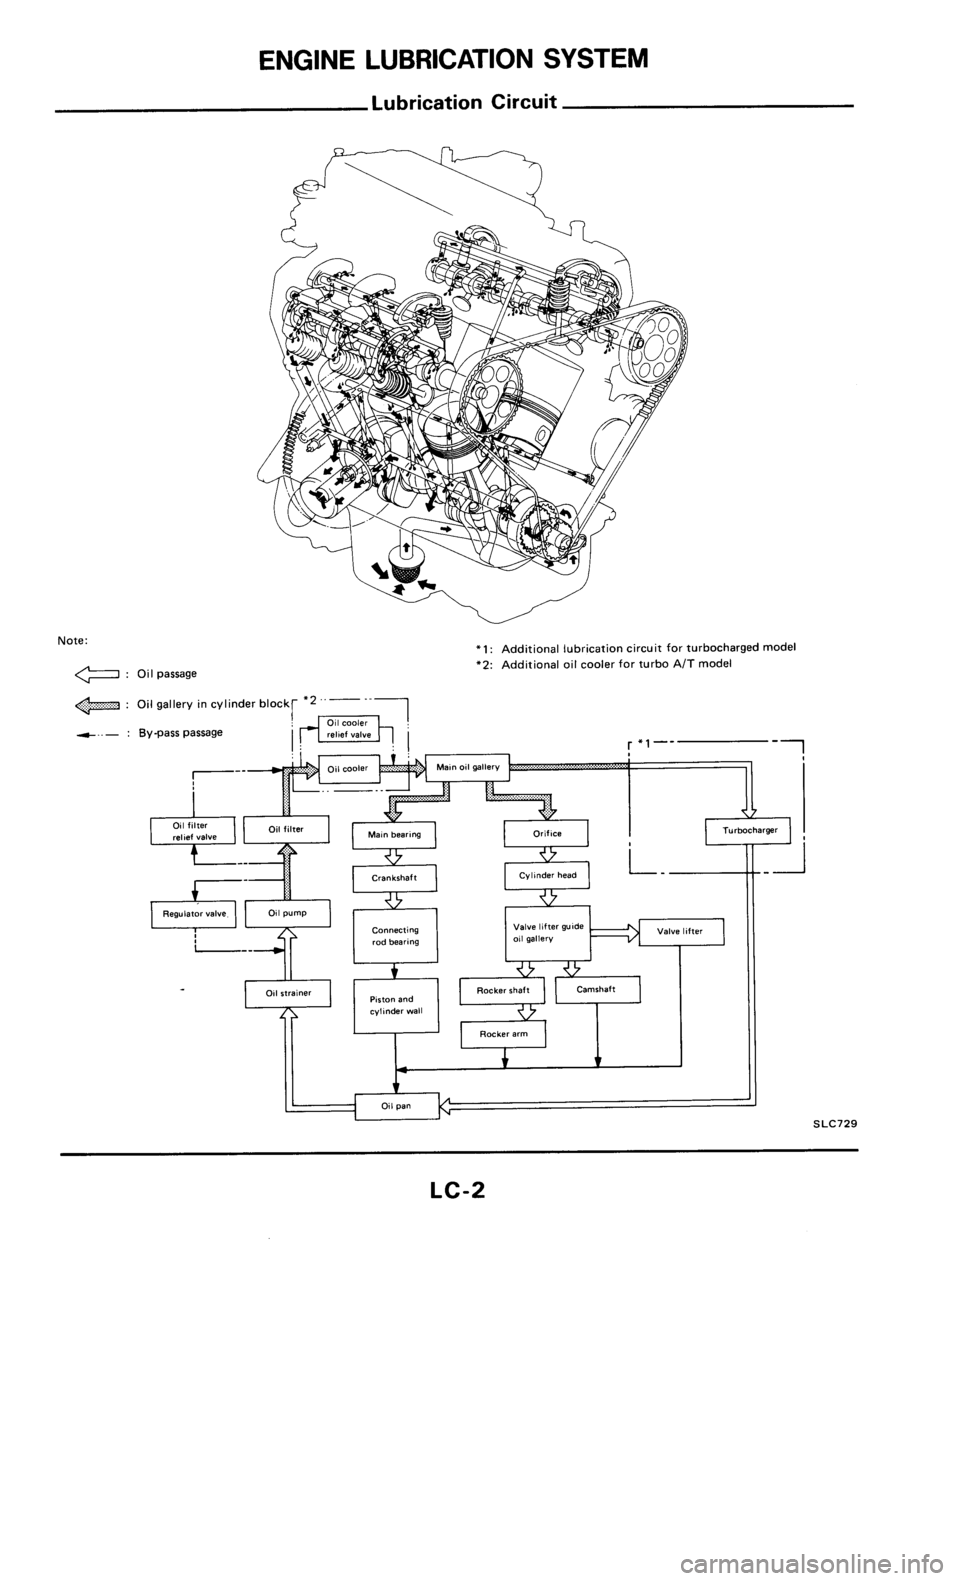 NISSAN 300ZX 1985 Z31 Engine Lubrication And Cooling System Workshop Manual, Page 2